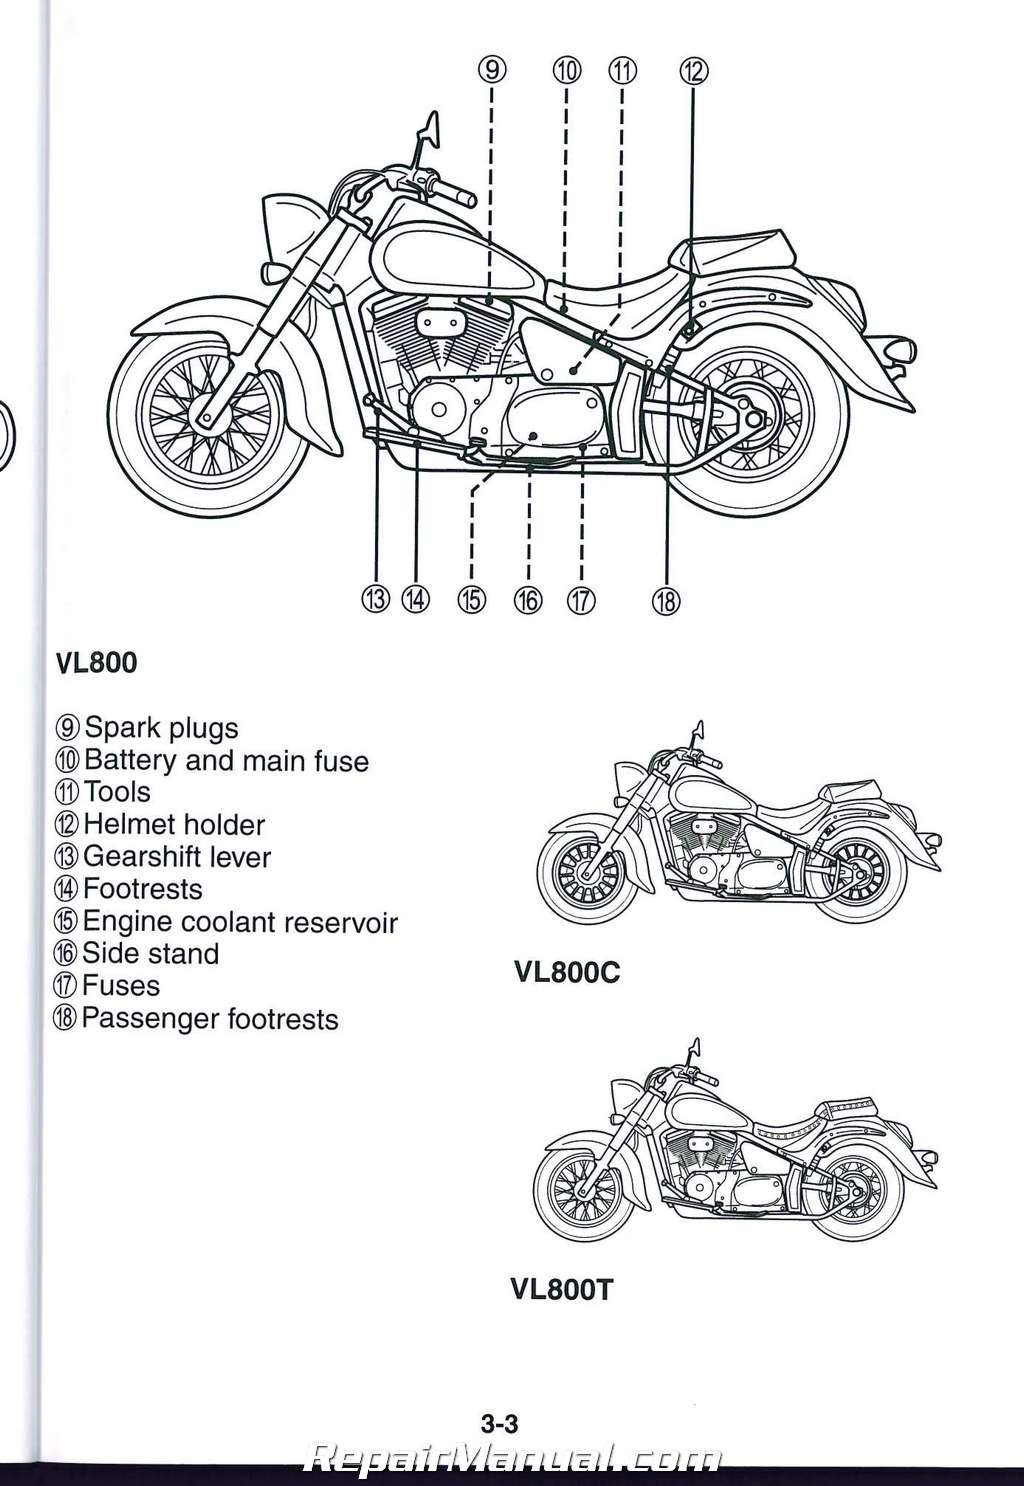 Suzuki M50 Diagram Reinvent Your Wiring 2007 Ridgeline Fuses Electrical Diagrams Rh Wiringforall Today 2006 Boulevard M90